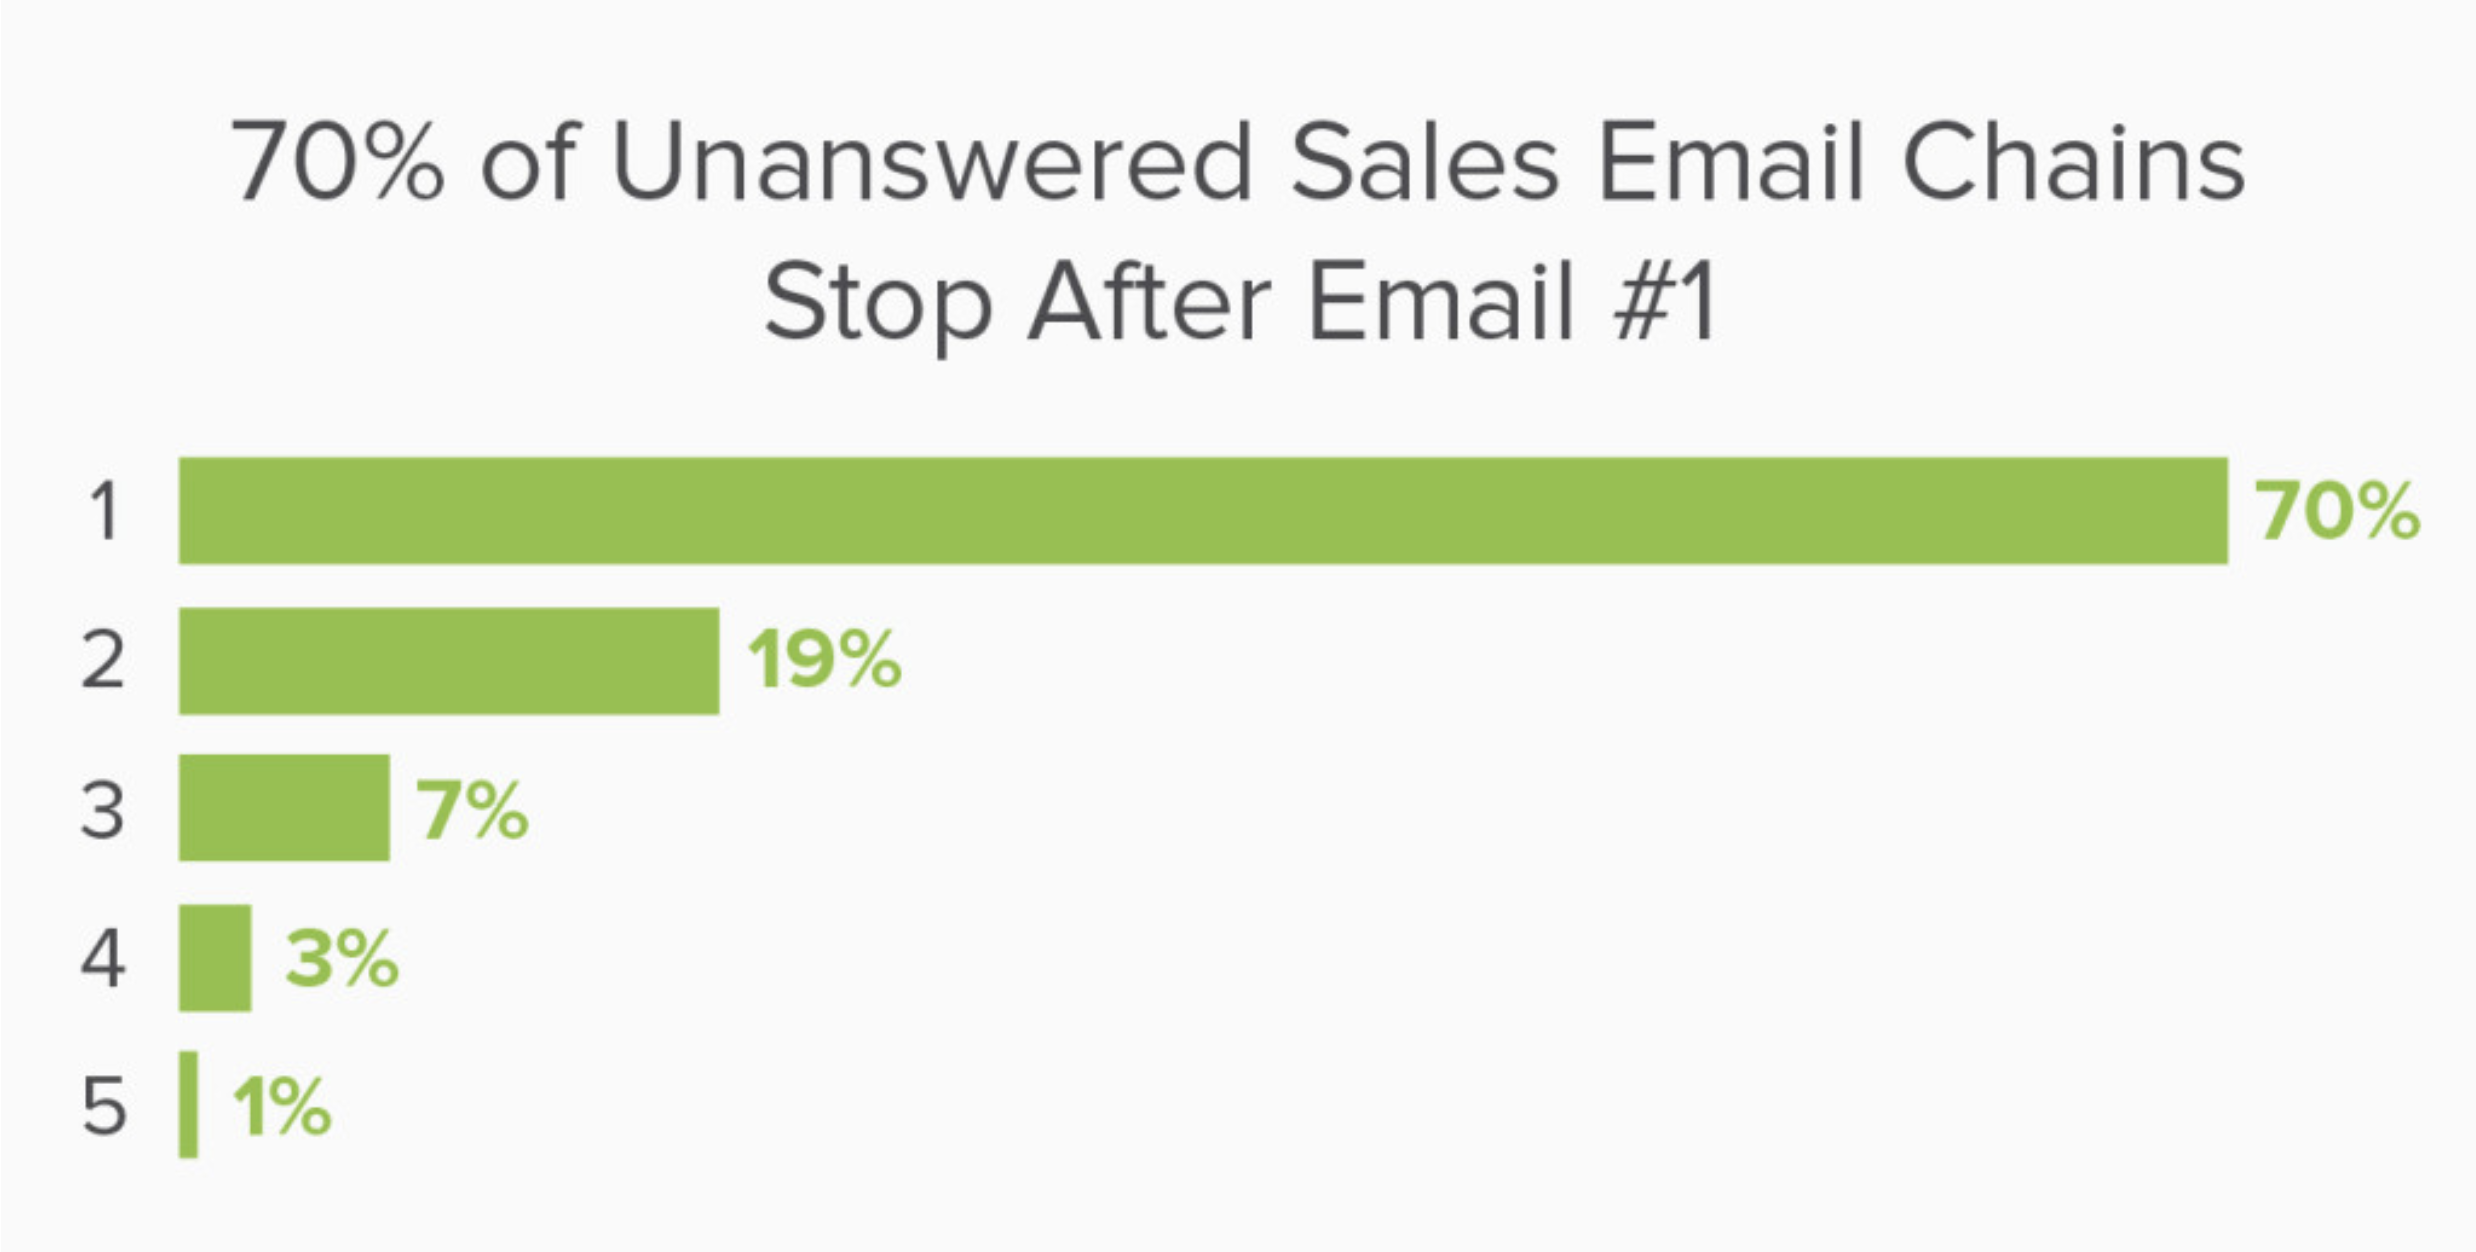 unanswered sales email chains